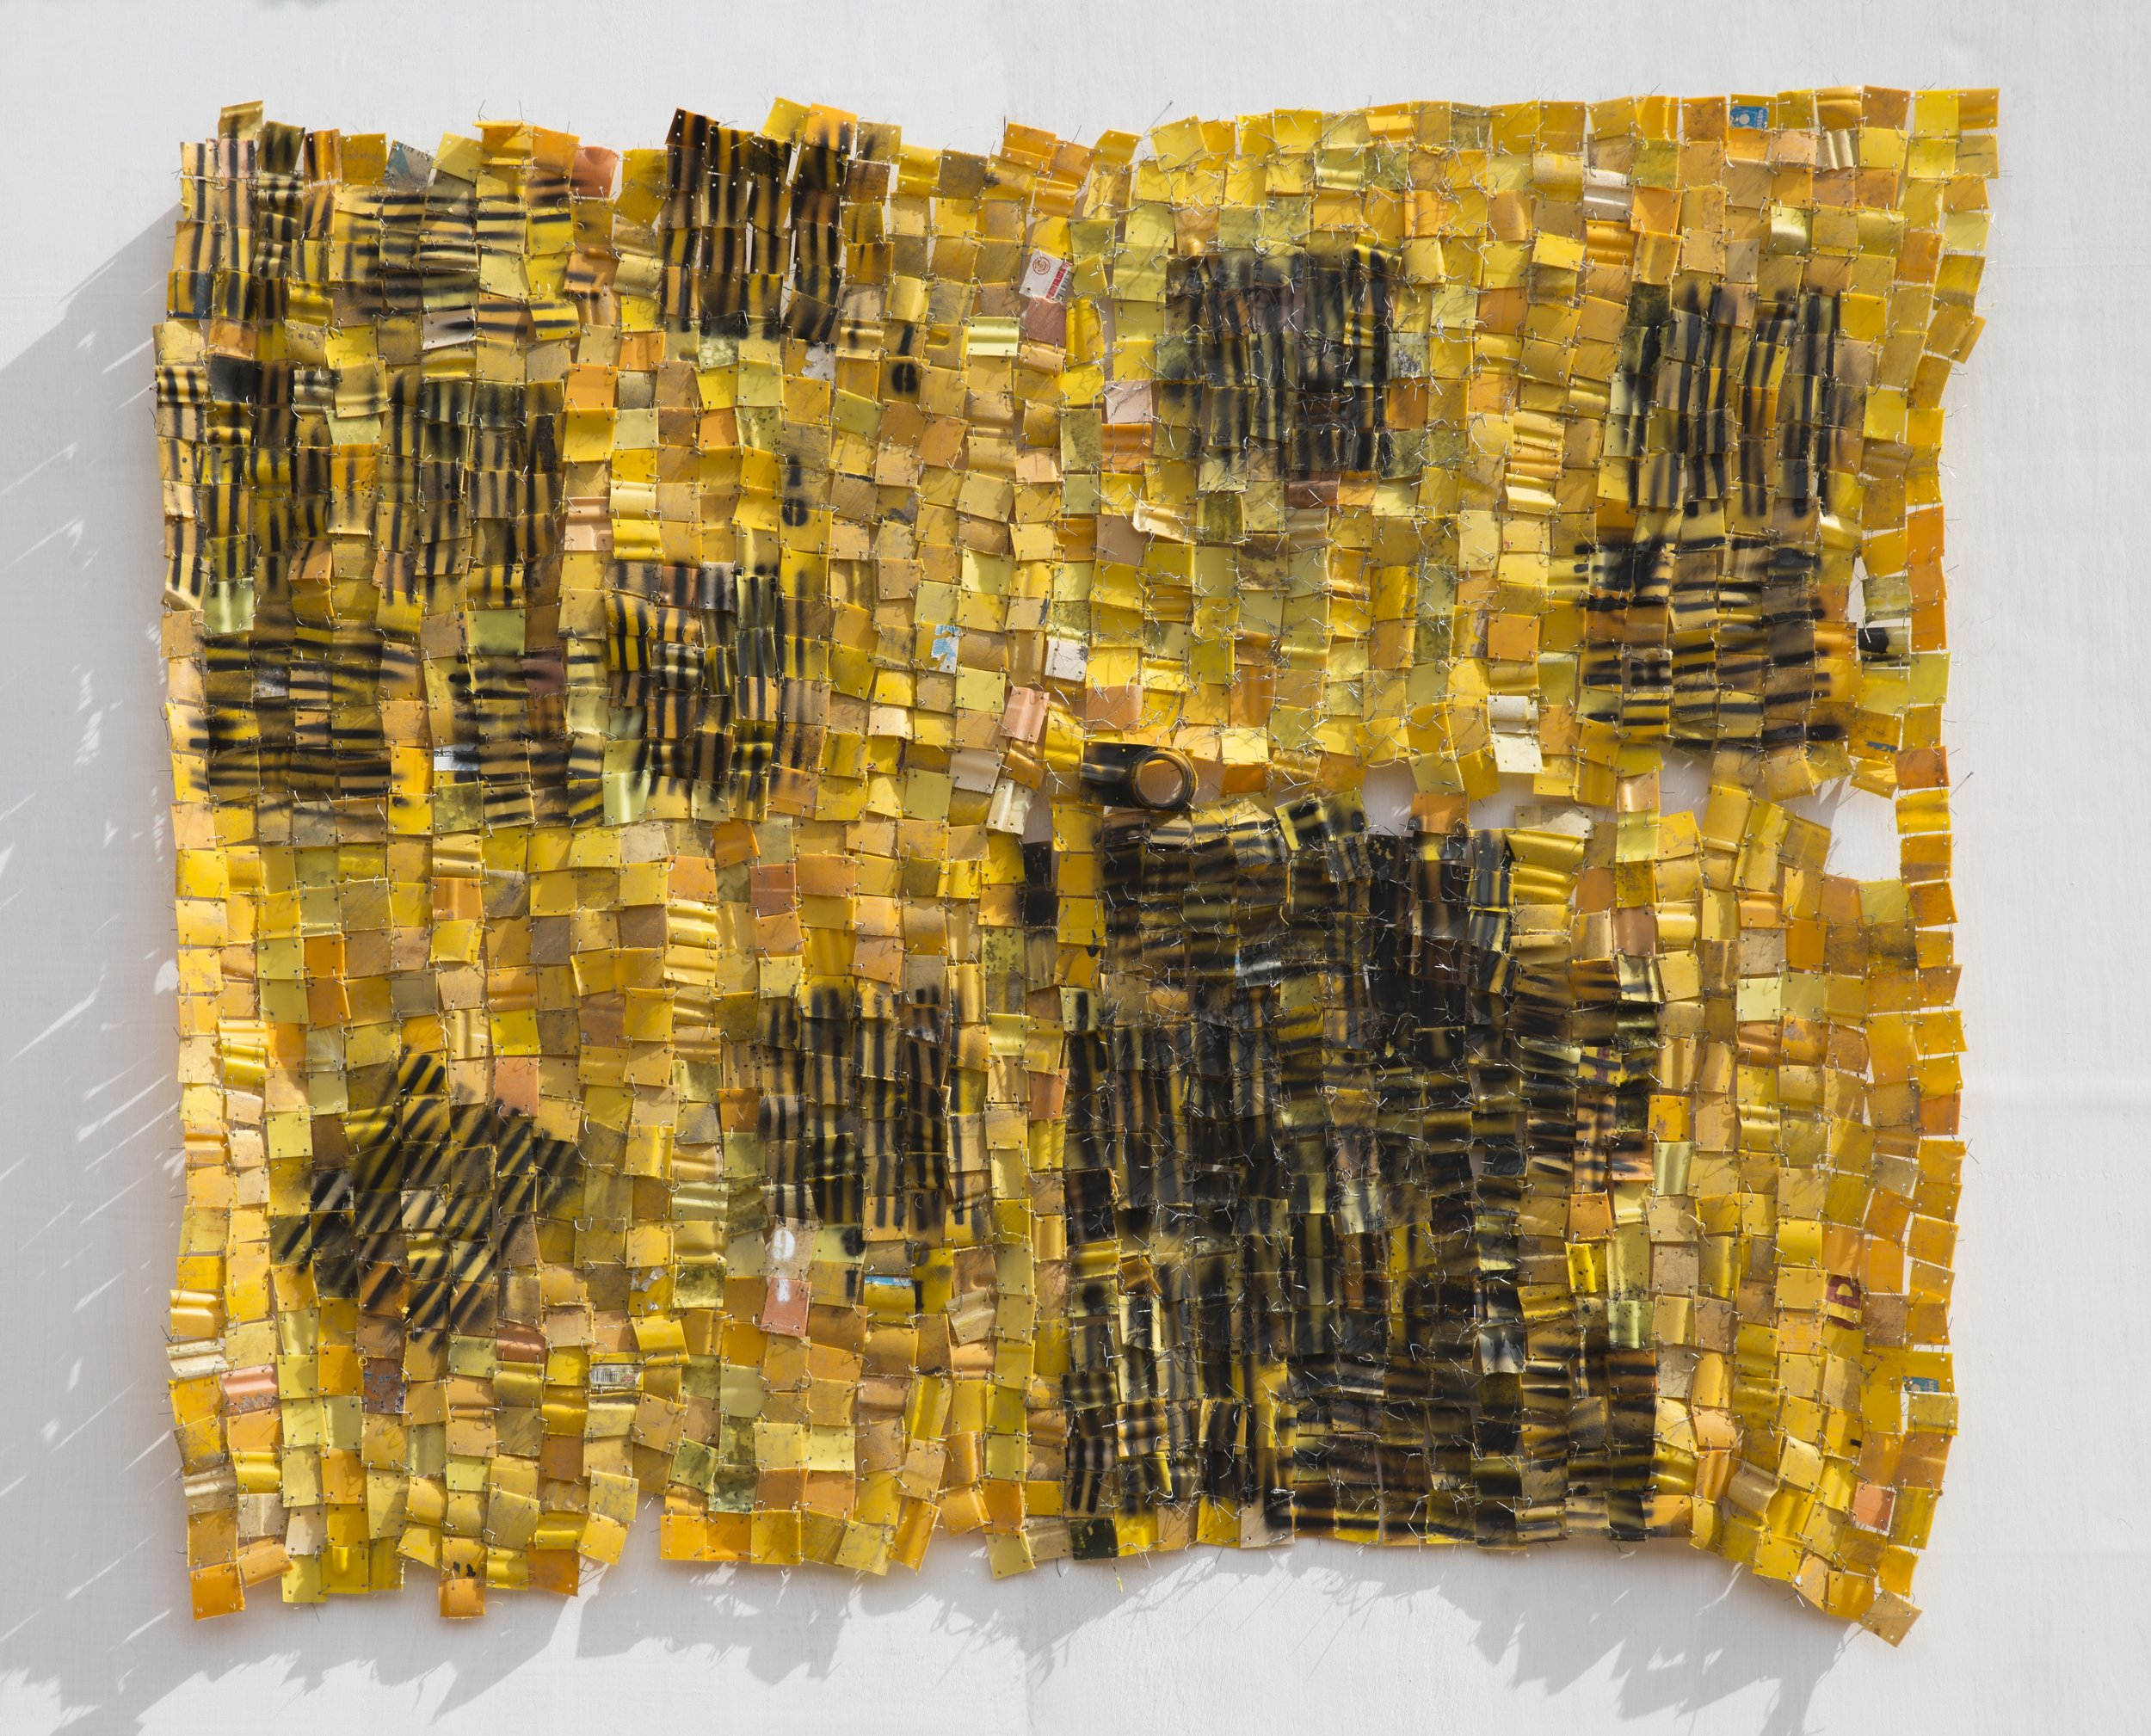 Serge Attukwei Clottey, Too far from home, 2017, Plastics, wires, and oil paint, 147.32 x 198.12 cm, Courtesy the artist and Gallery 1957